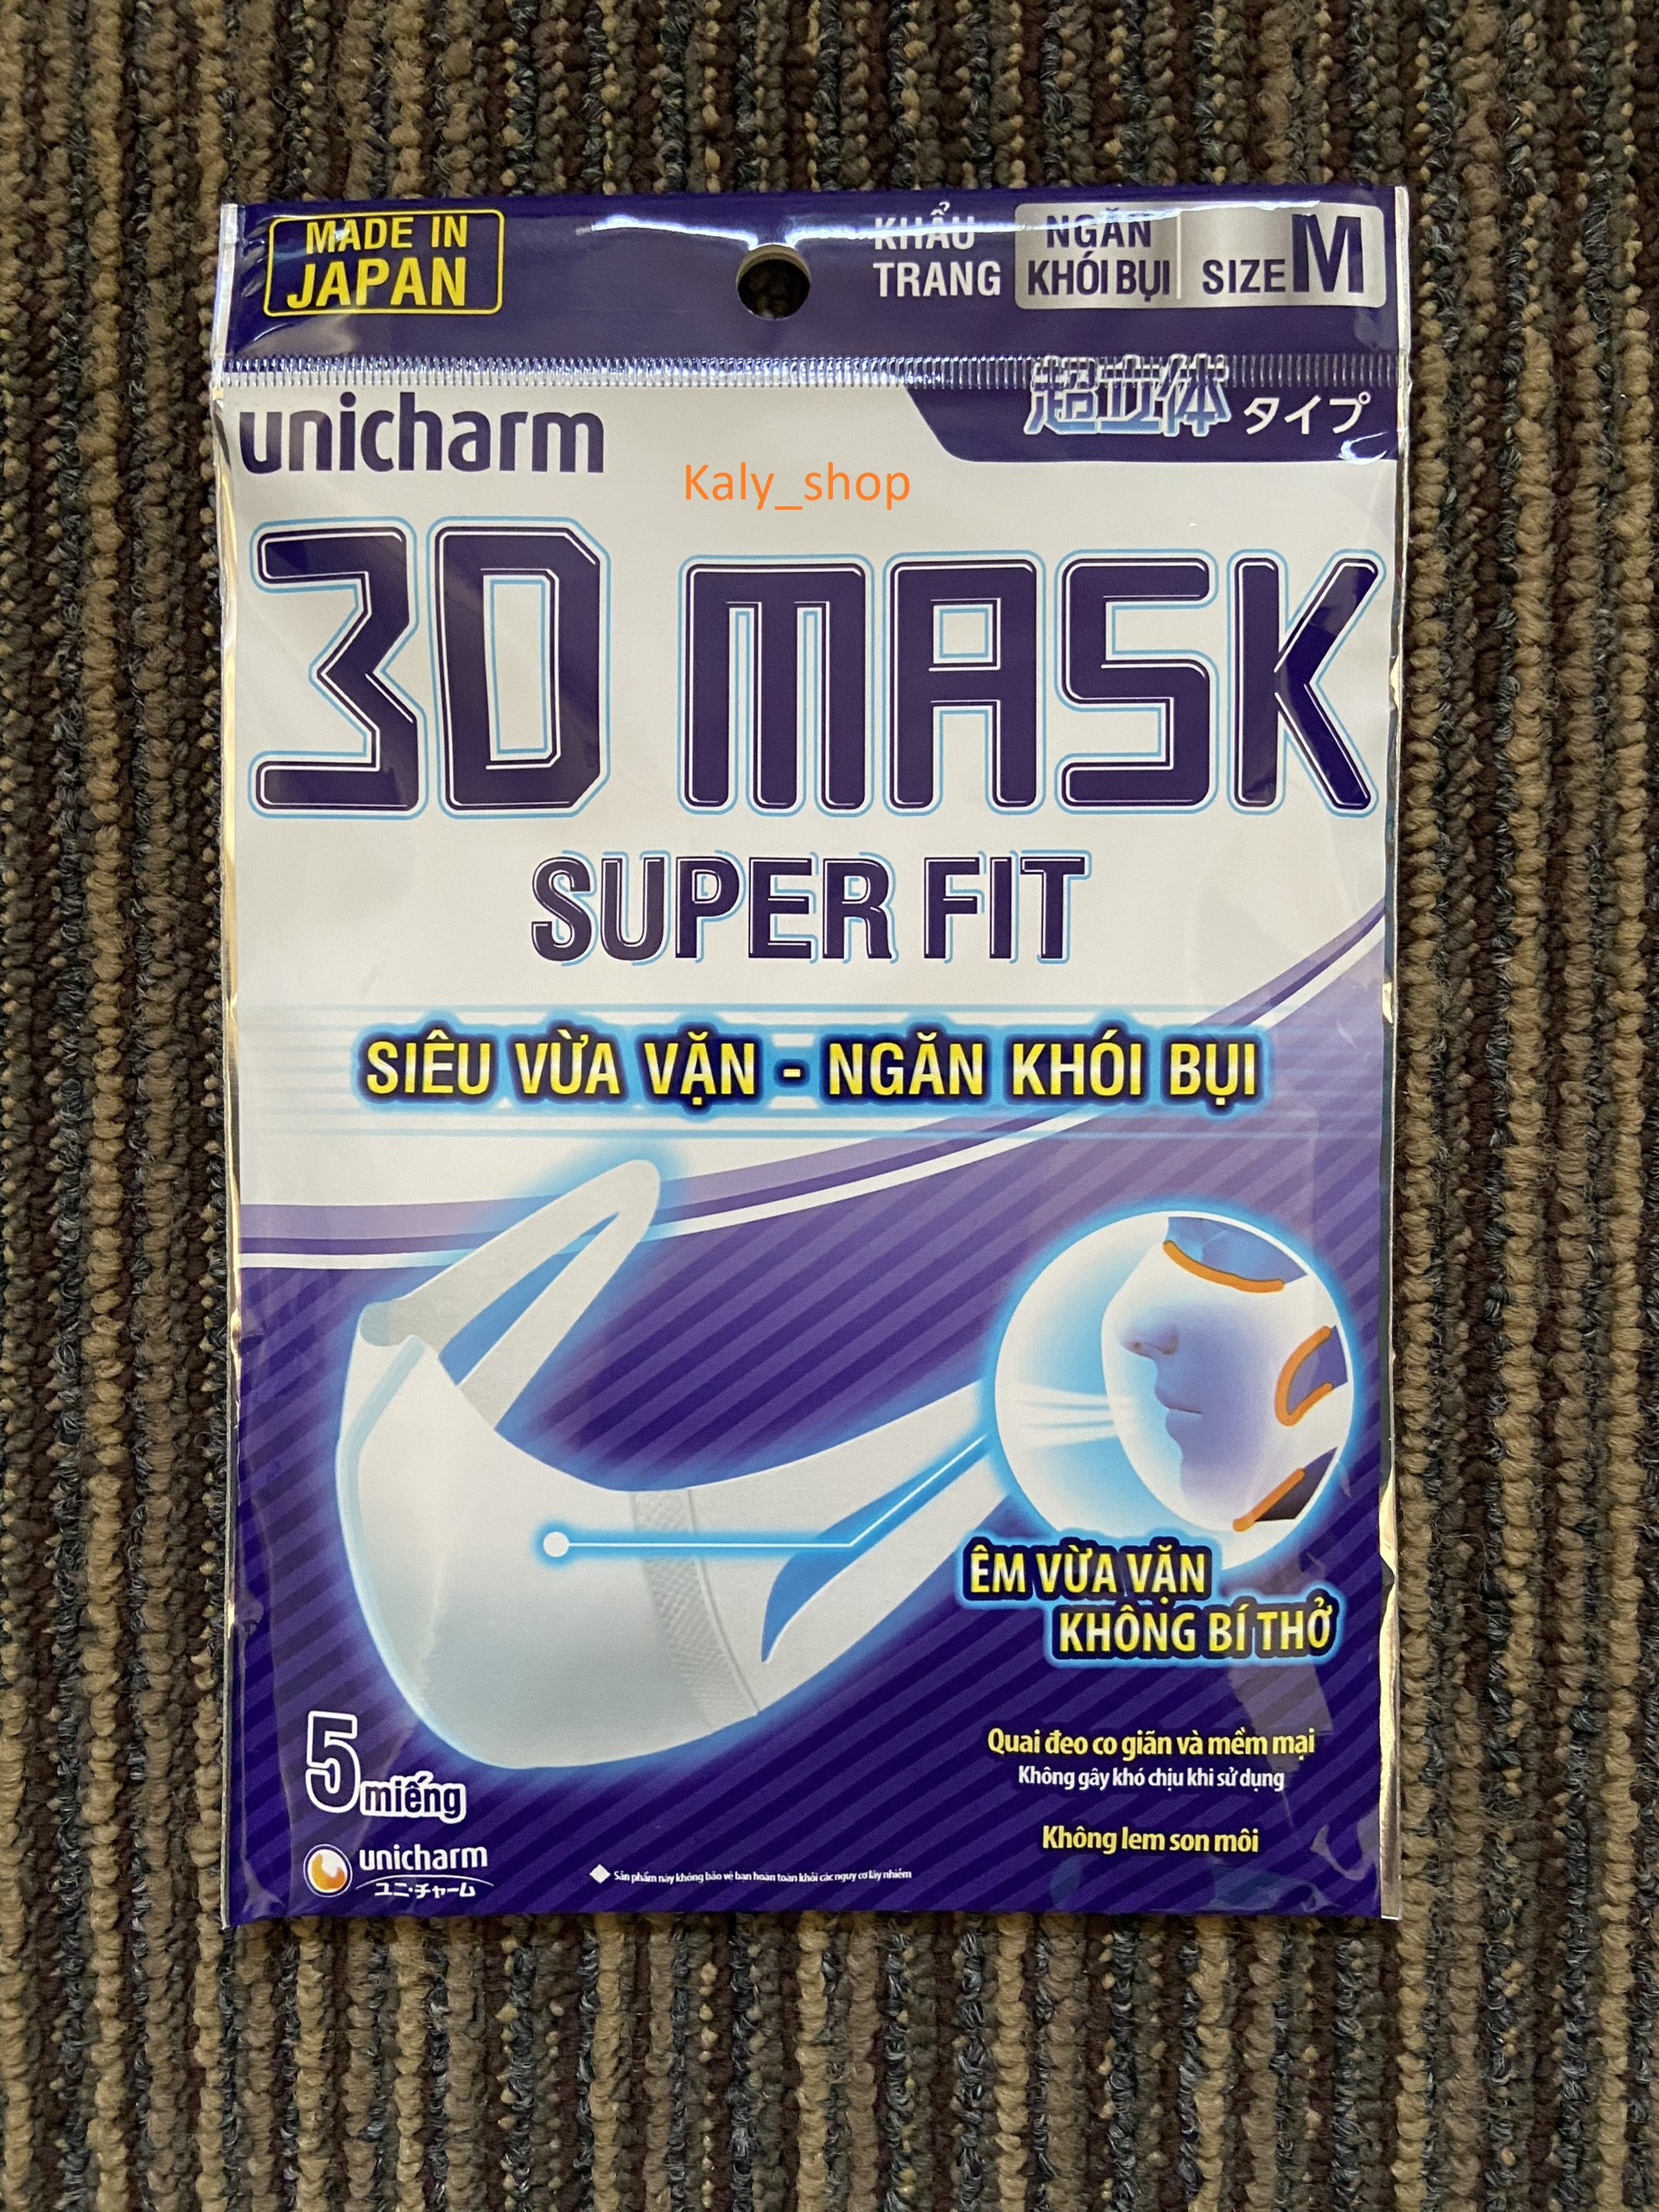 KT 3D Mask Unicharm Super Fit ( MADE IN JAPAN ) Đang Ưu Đãi